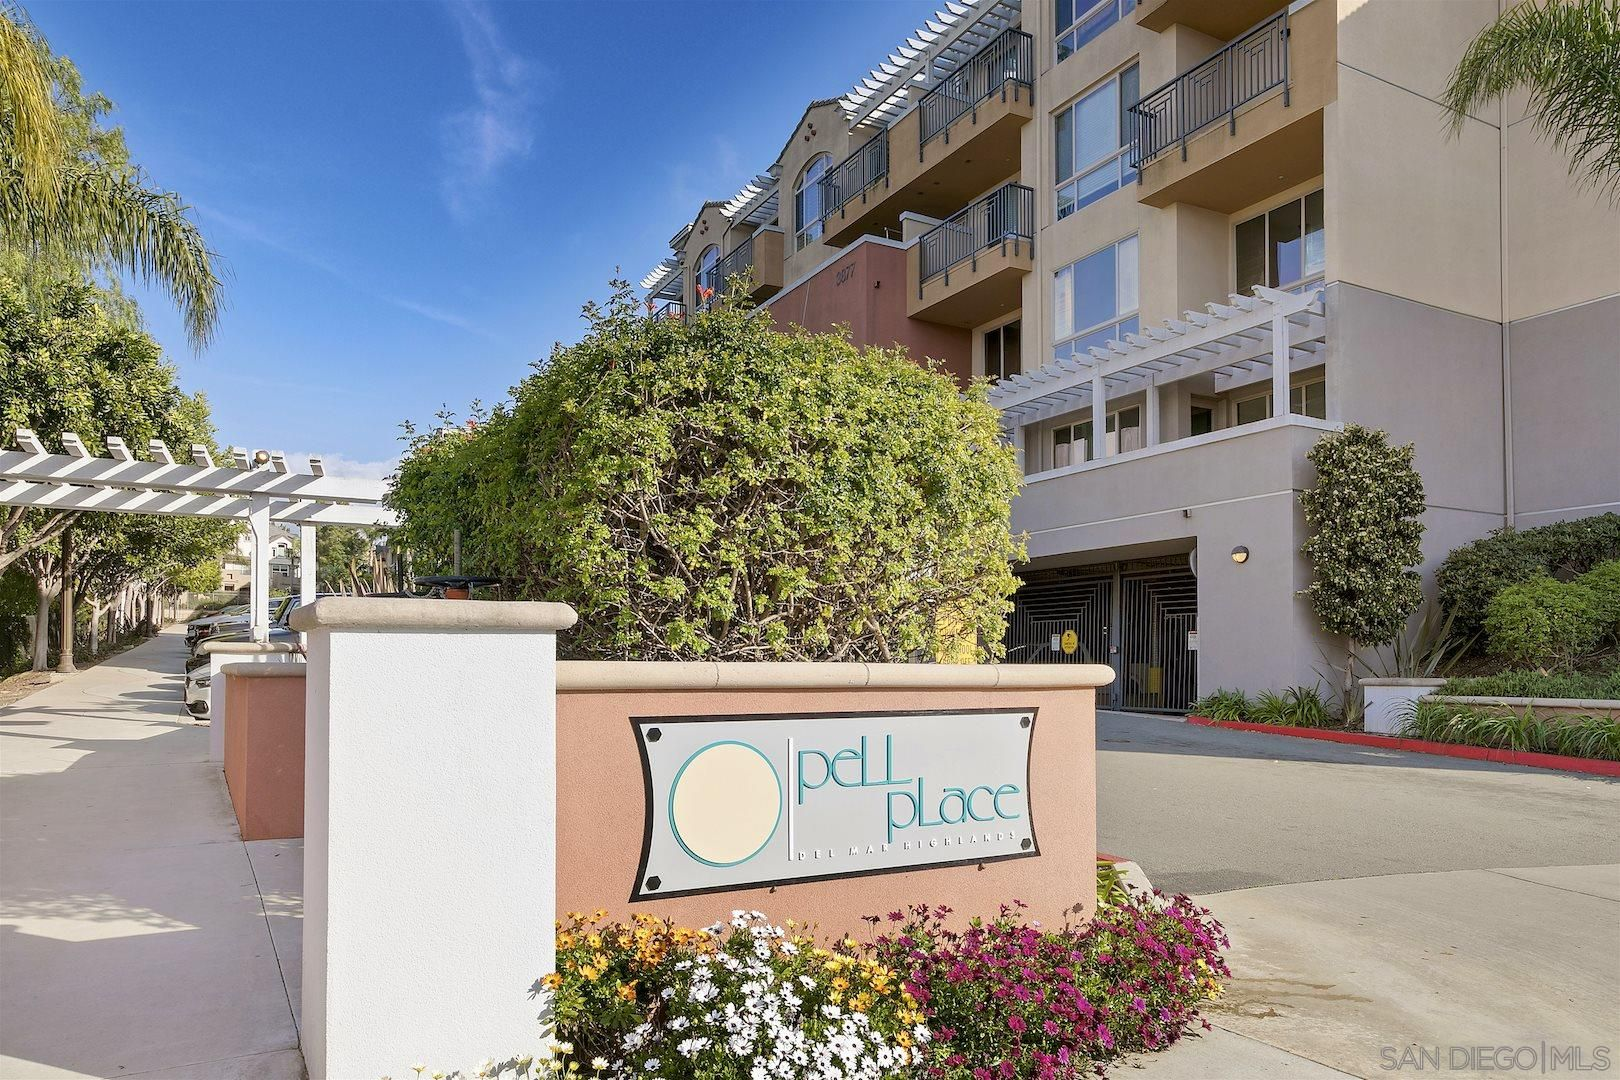 Main Photo: CARMEL VALLEY Condo for sale : 1 bedrooms : 3877 Pell Pl #417 in San Diego